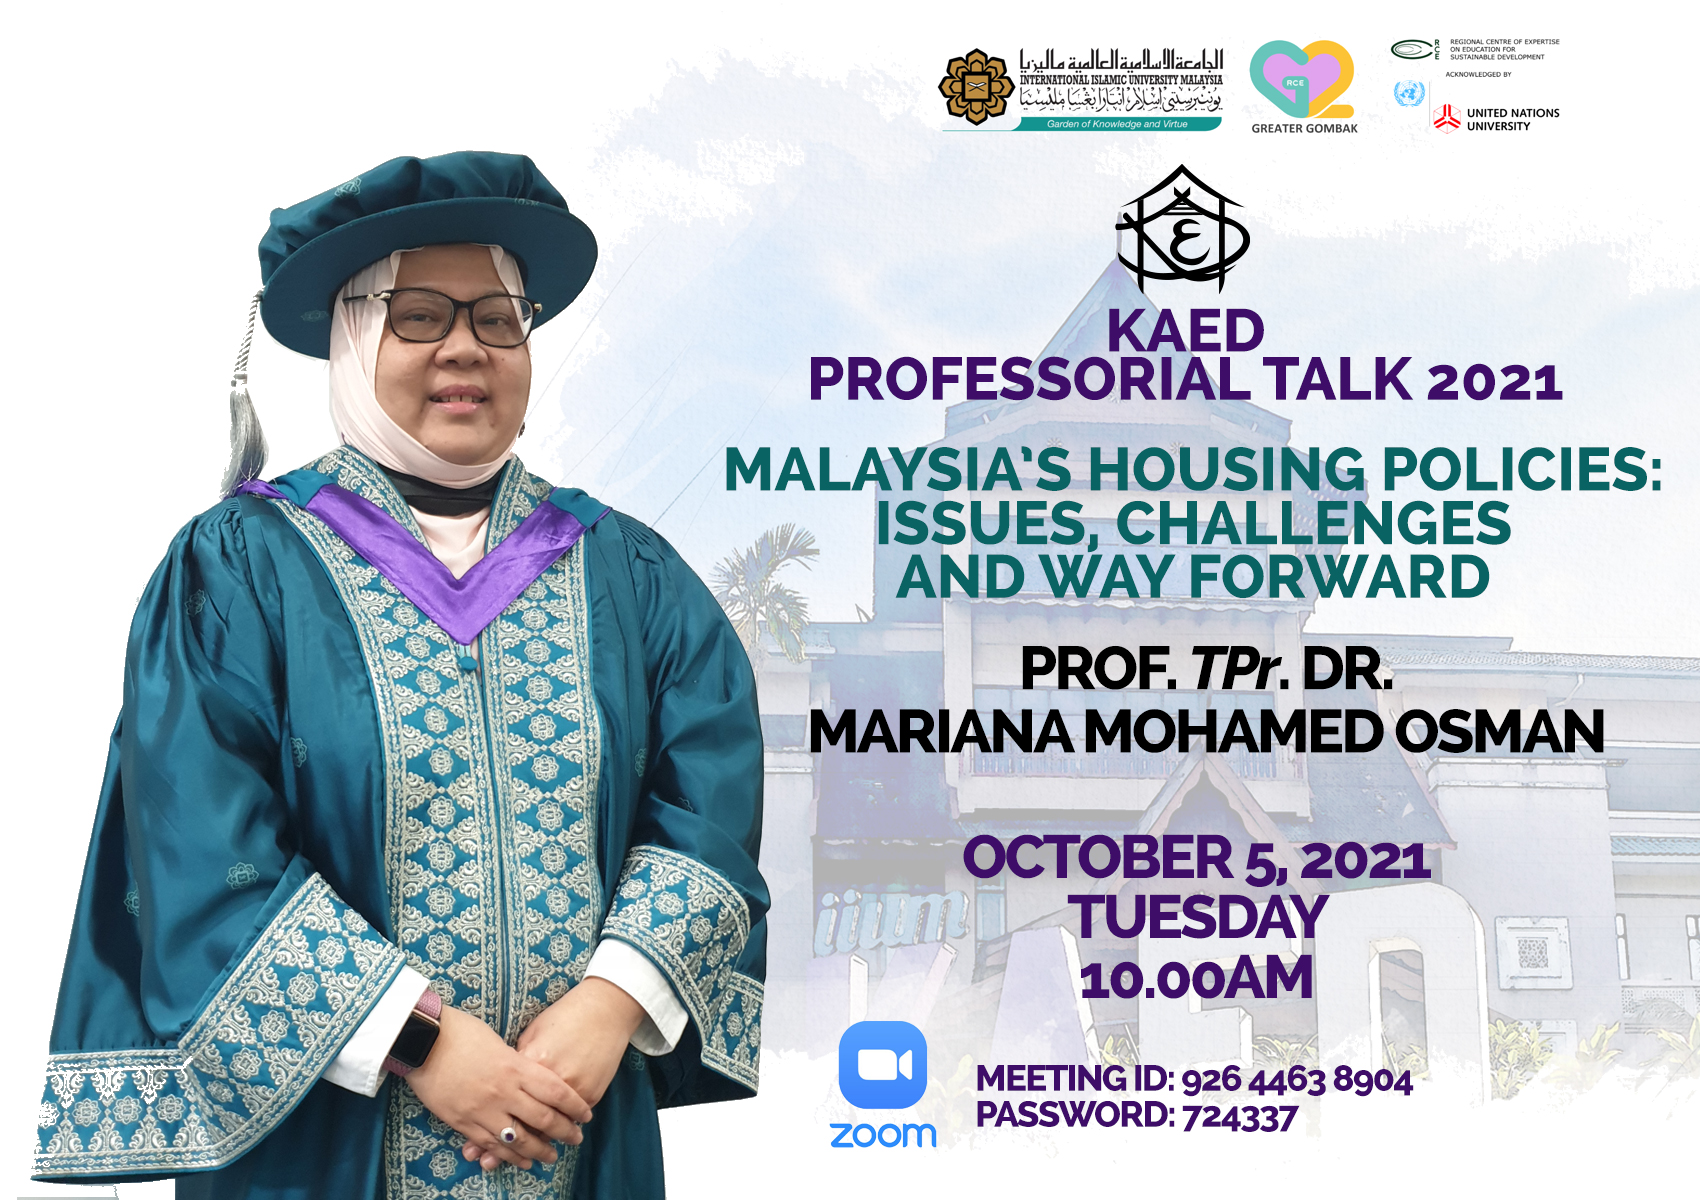 KAED Professorial Talk 2021: Malaysia's Housing Policies: Issues, Challenges and Way Forward by Prof. TPr.  Dr. Mariana Mohamed Osman